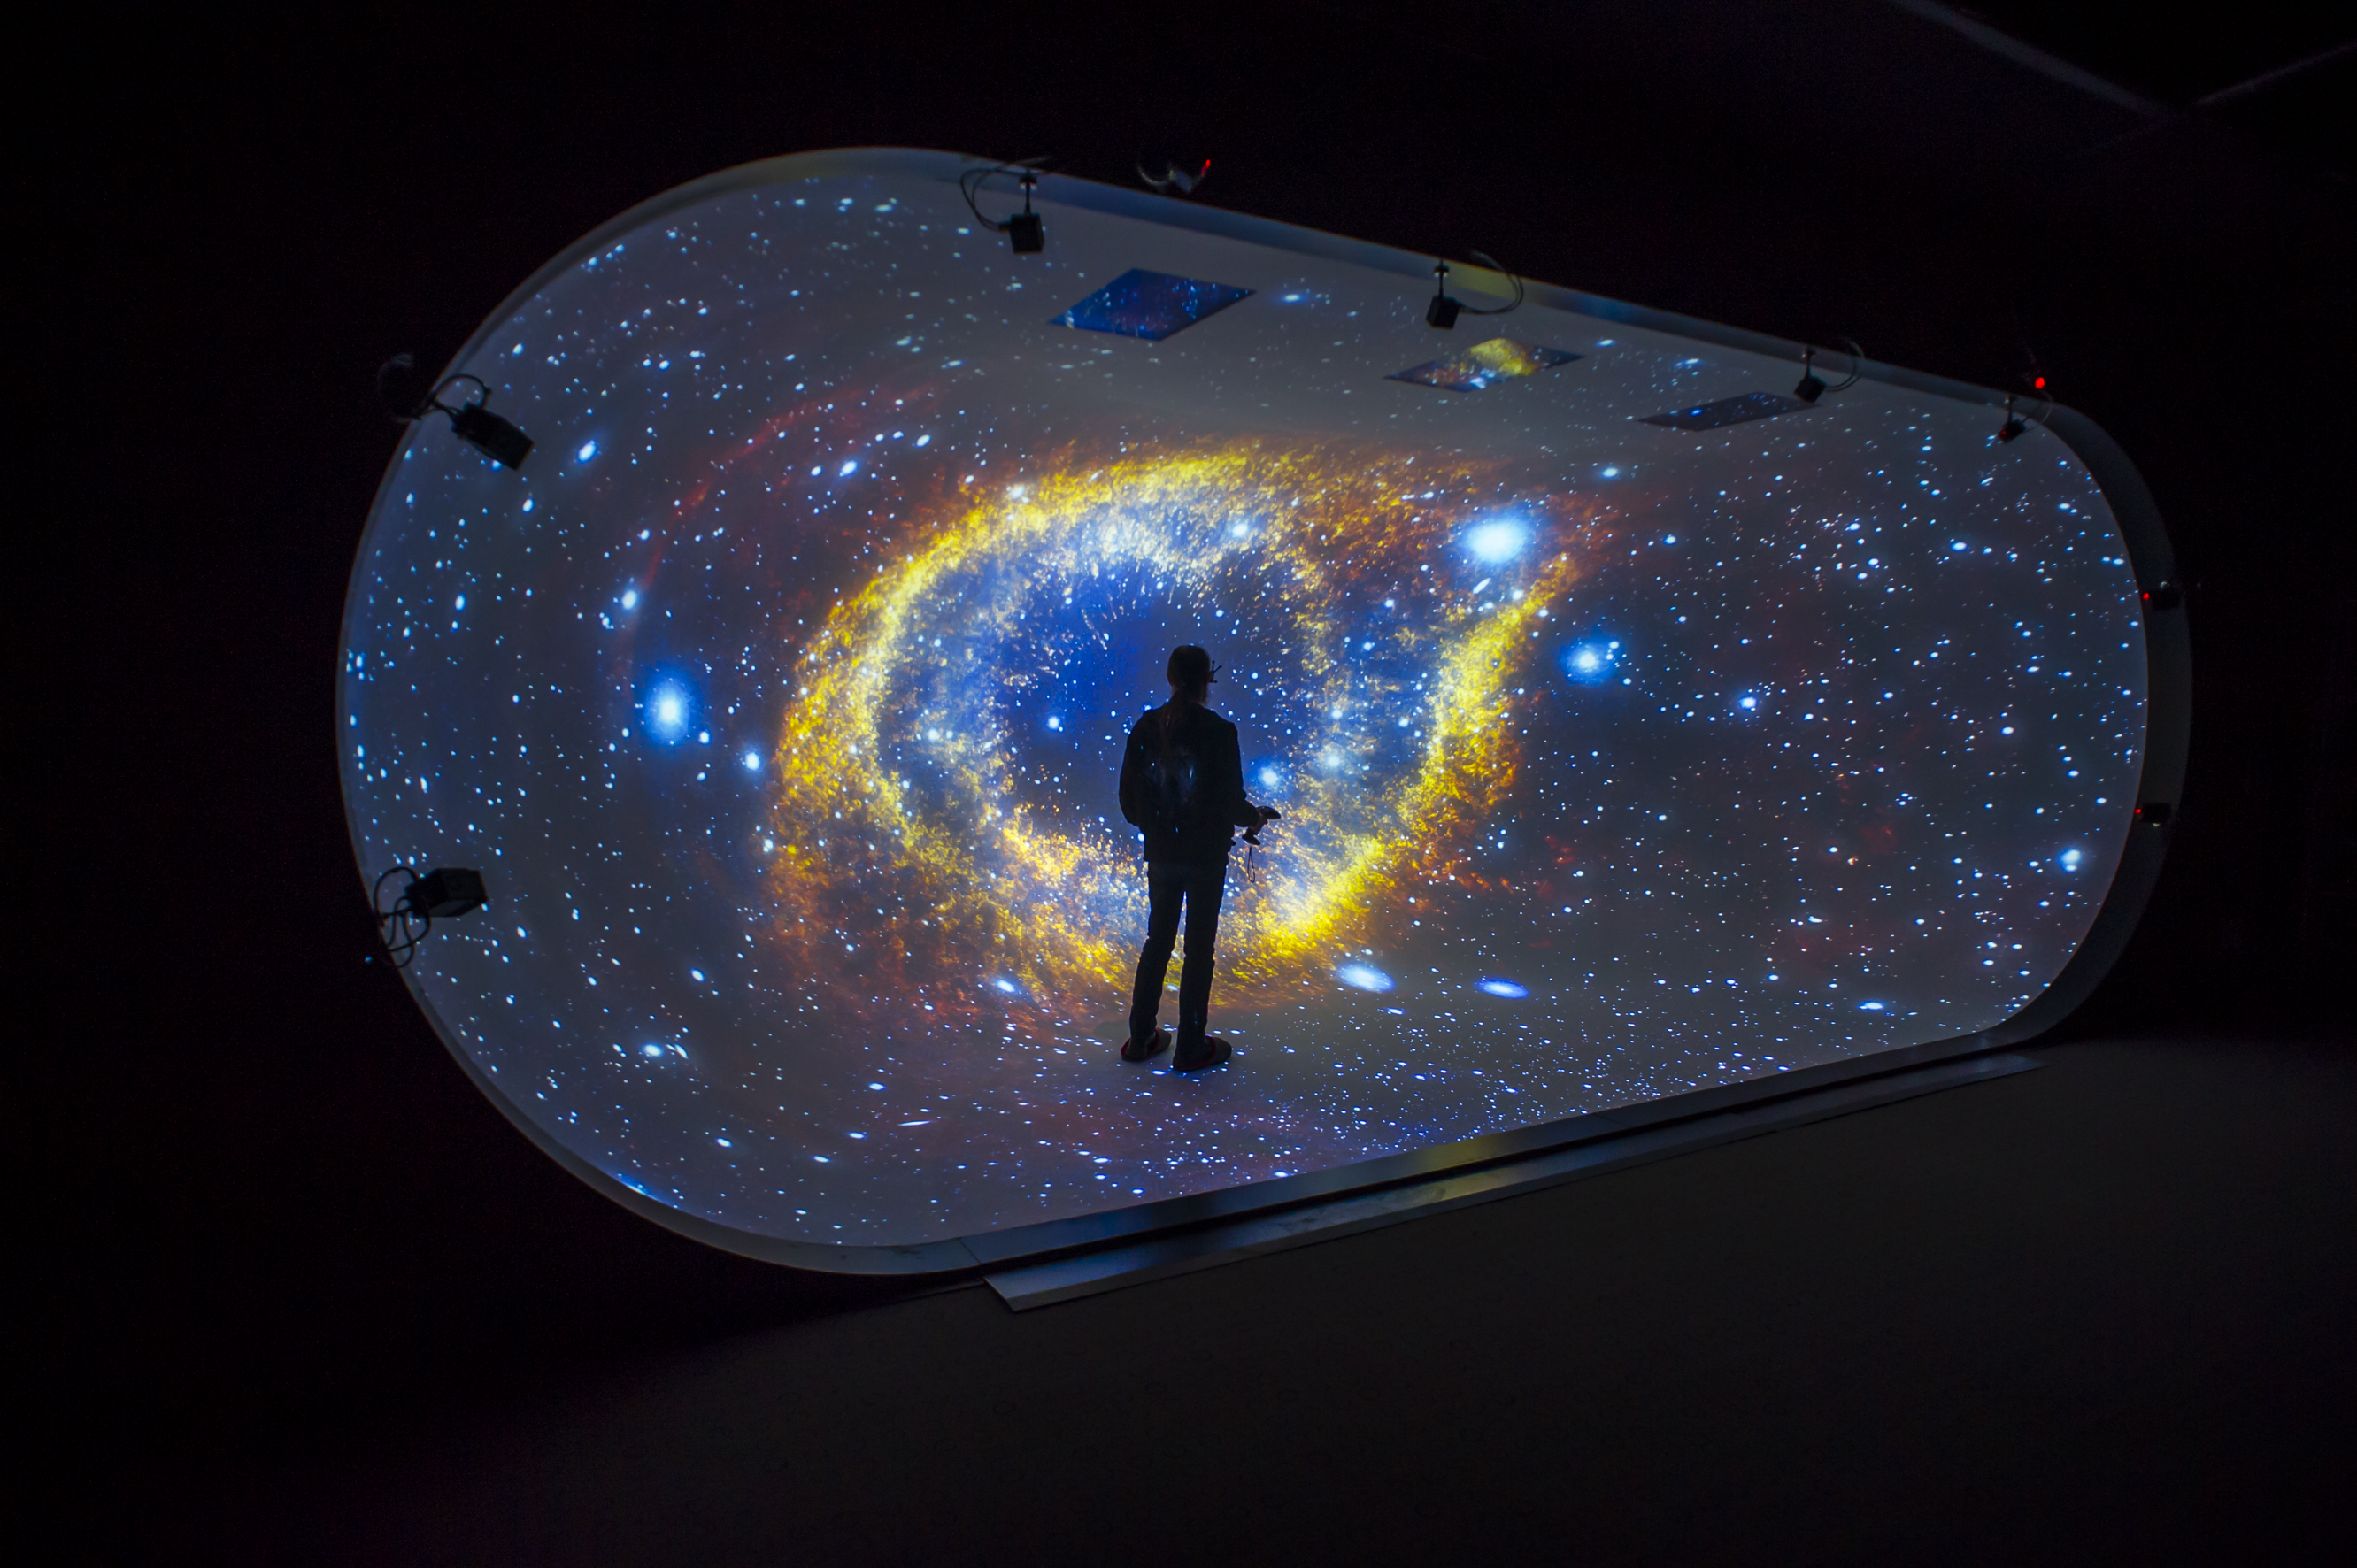 The future of immersive virtual reality in education and training